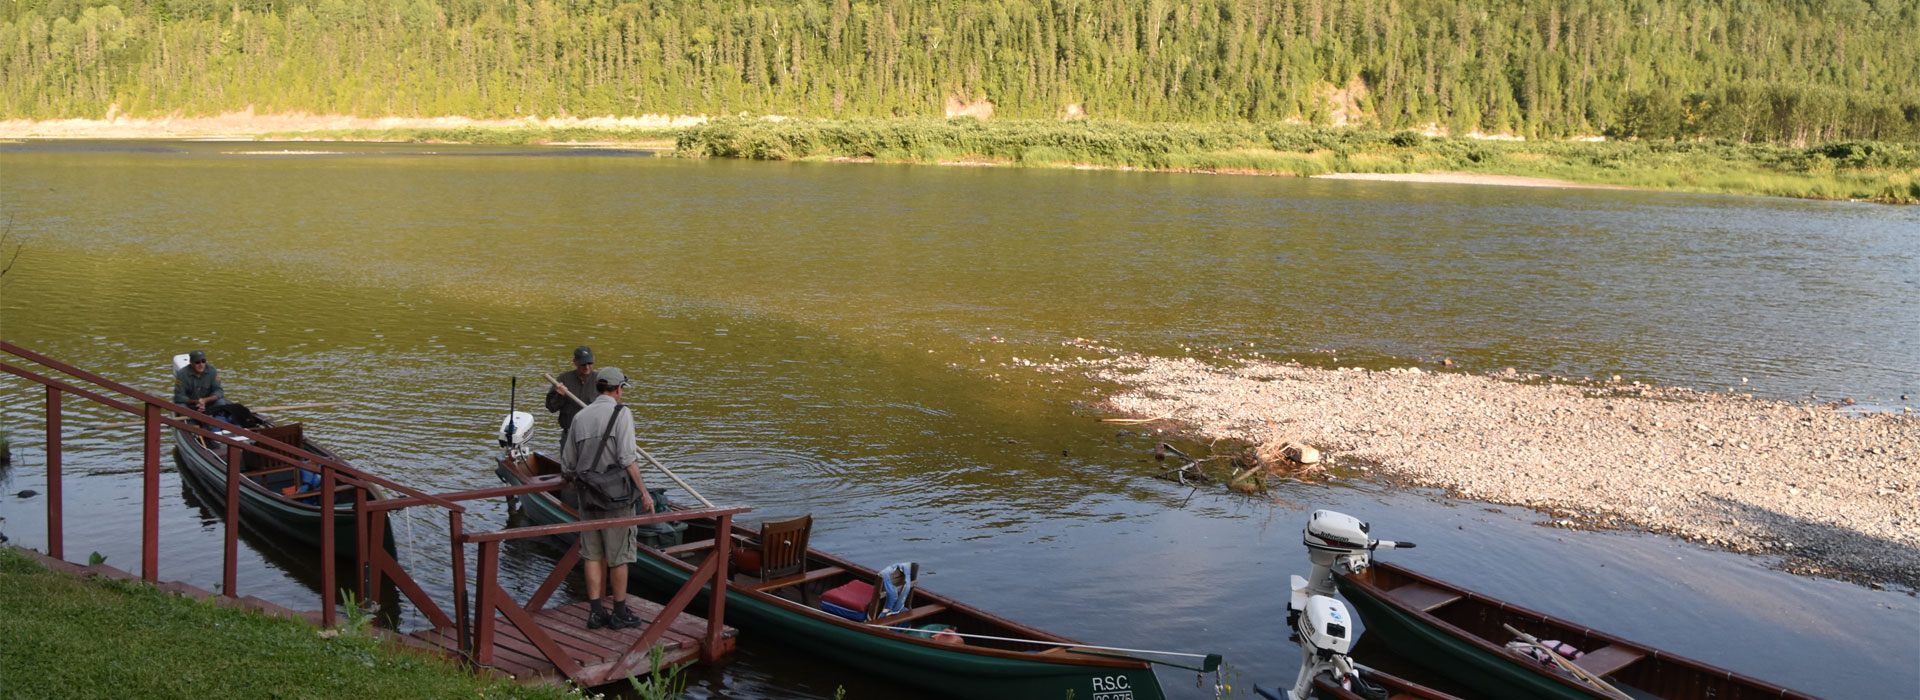 Holy Warers Fly Fishing Guides